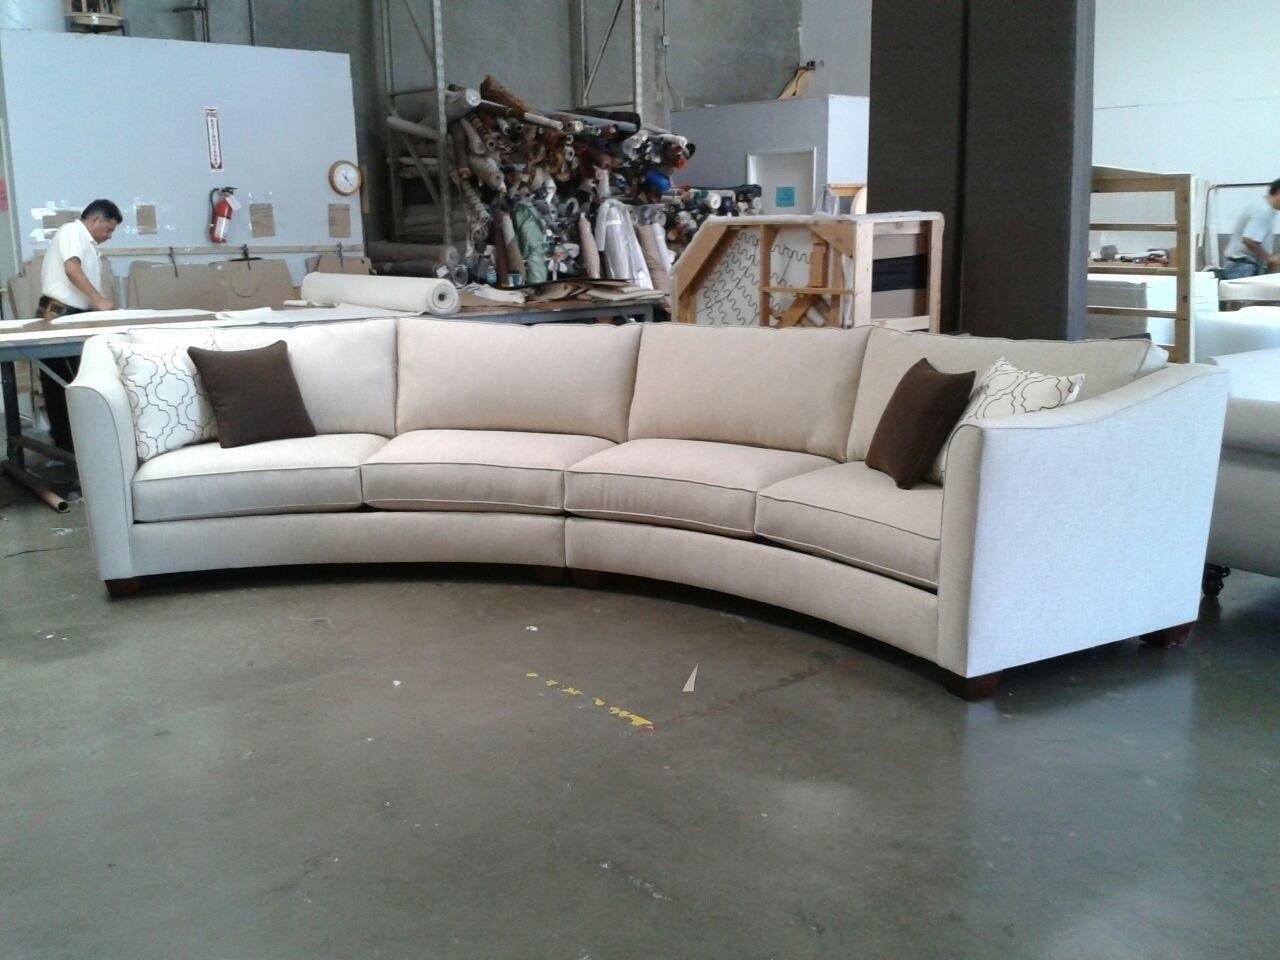 Sofas Center : Sofas Center Roundl Sofa Rare Photos Ideas Semi For Semi Sofas (Image 17 of 20)